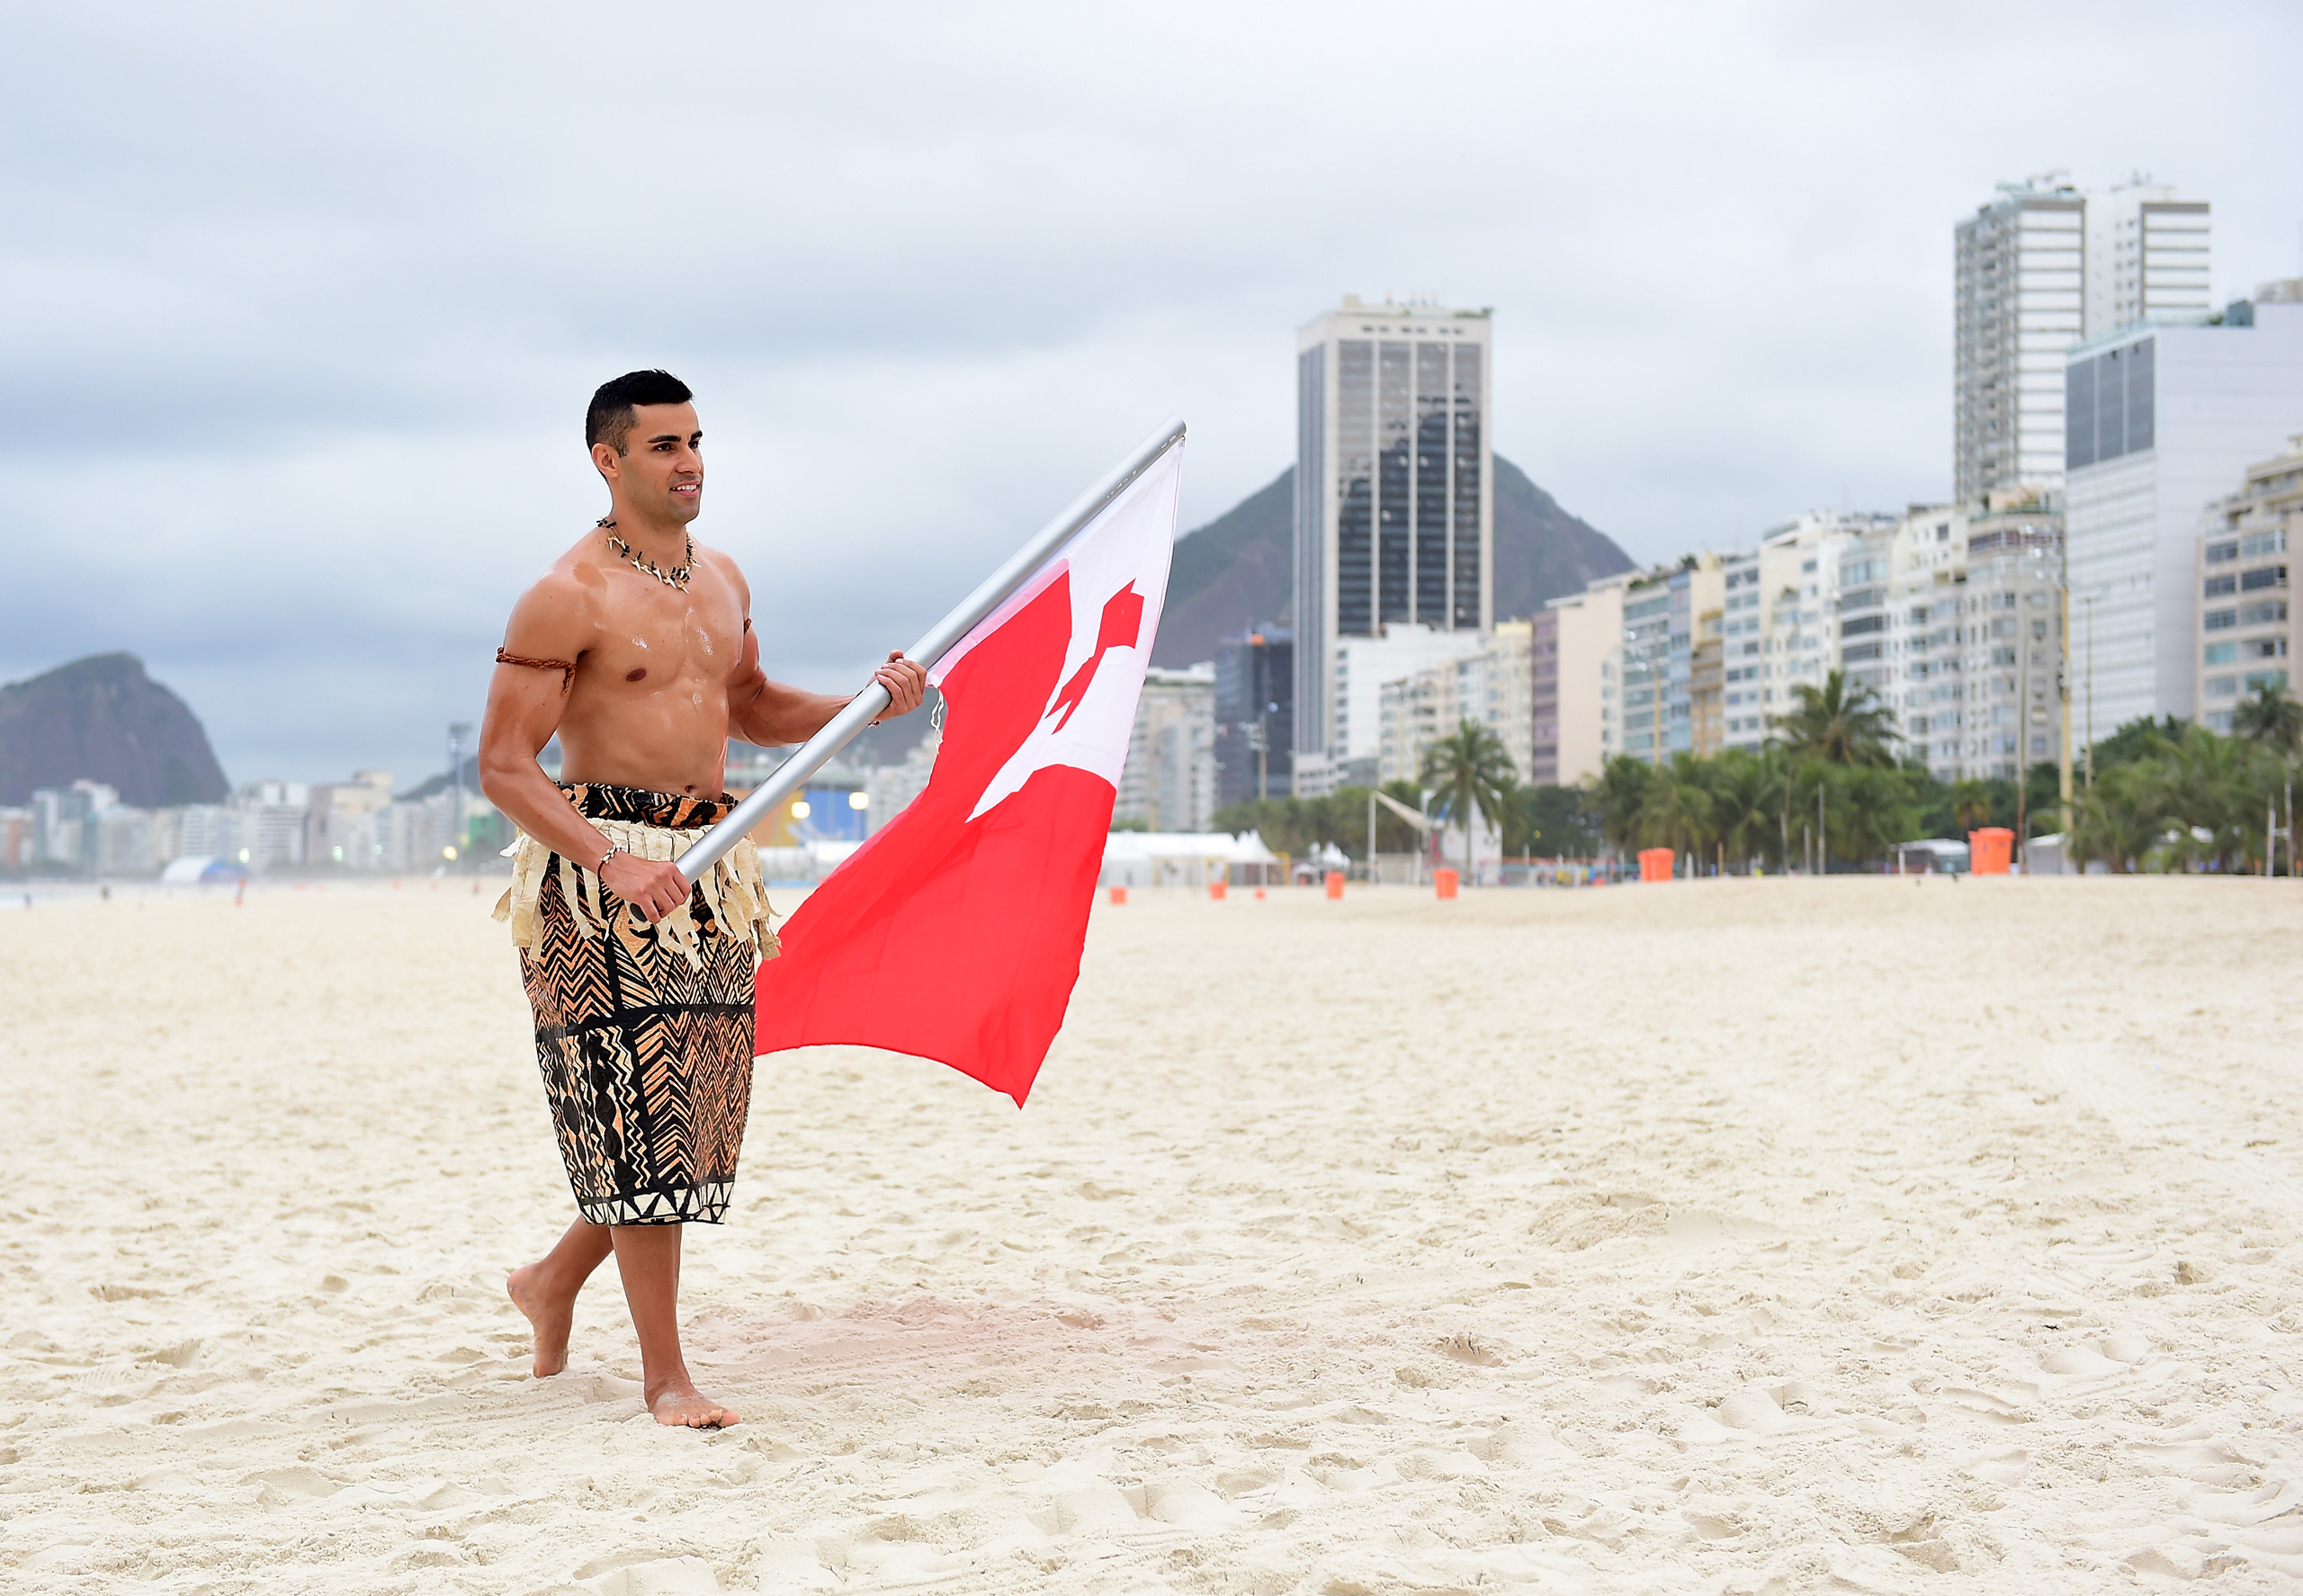 Pita Taufatofua of Tonga walks along the sand with his country's flag to the NBC Today show set at Copacabana Beach in Rio de Janeiro on Aug. 8, 2016.